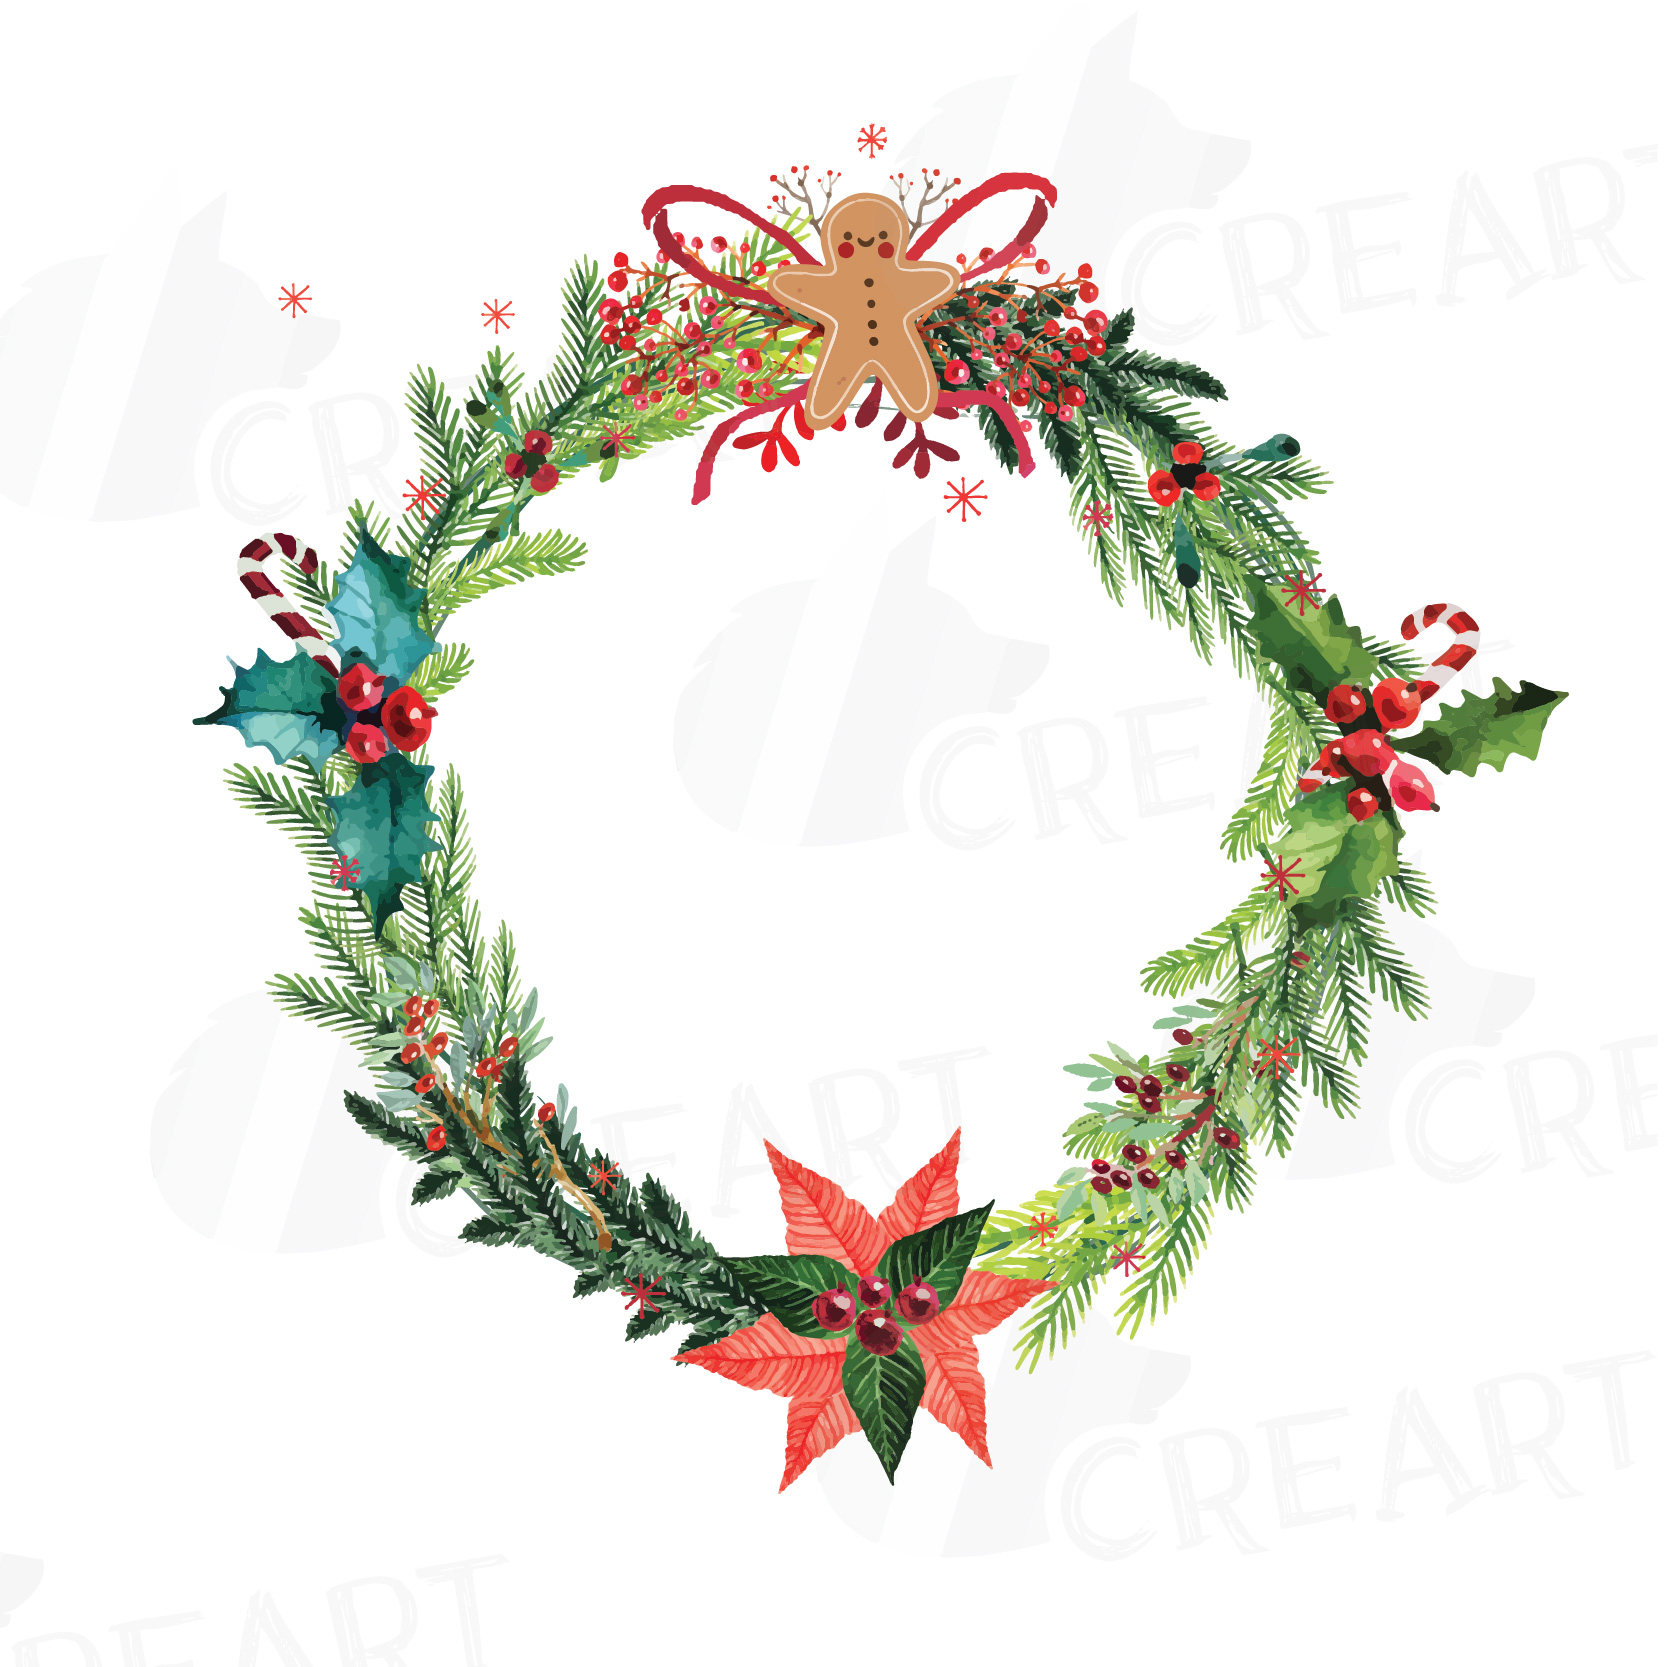 Christmas wreath thin. Holiday images free download